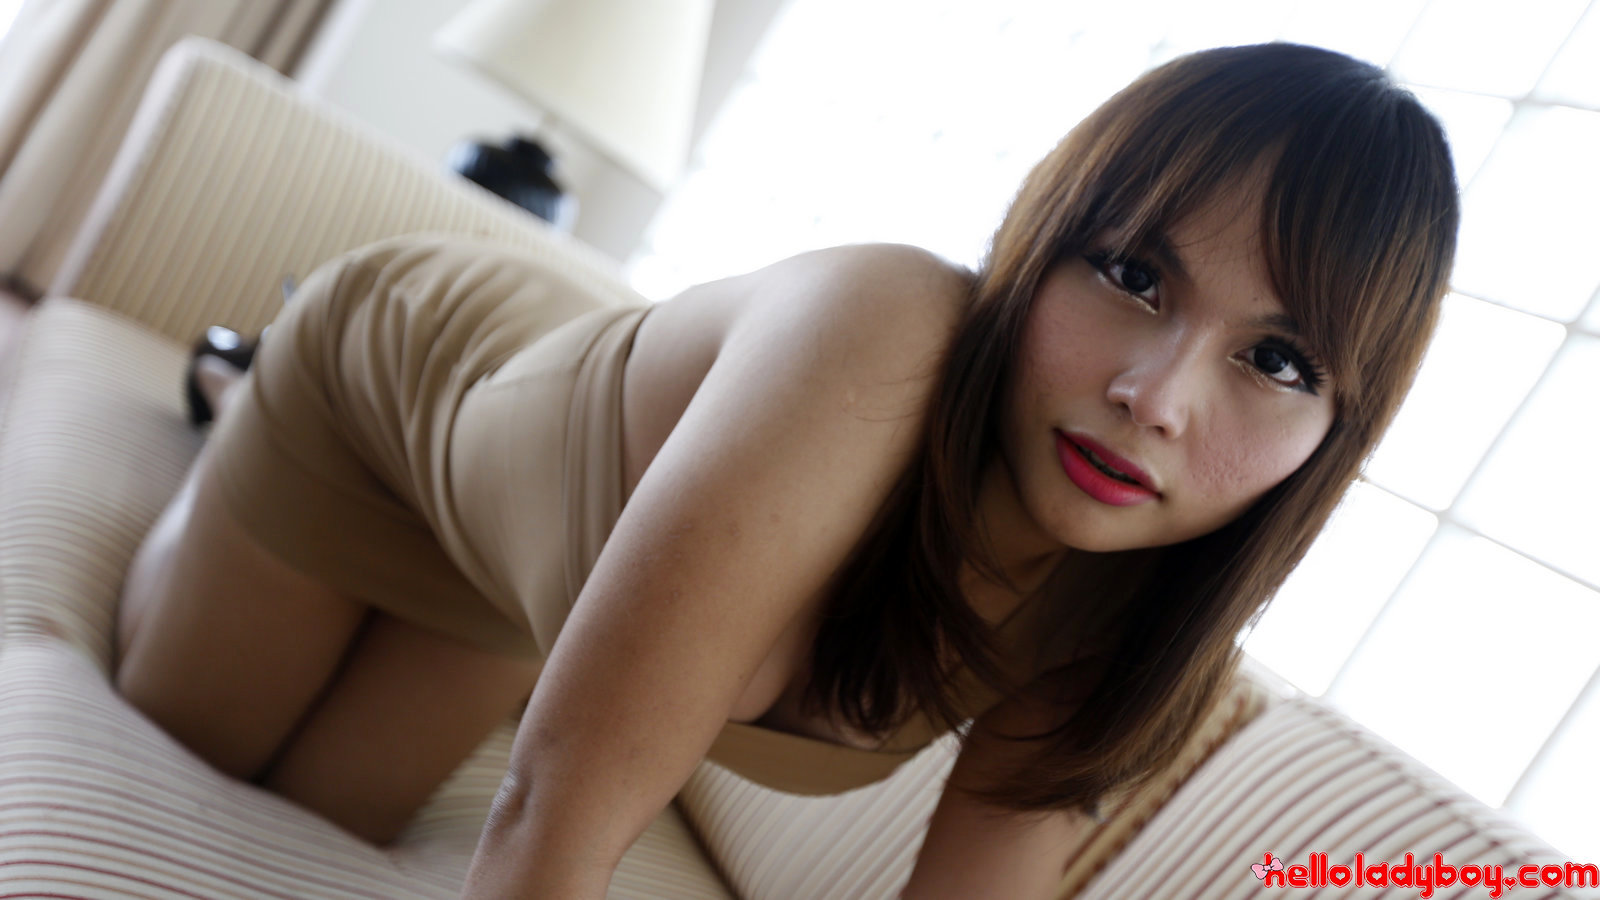 Asian Tgirl Gets A Facial From Foreign Tourist